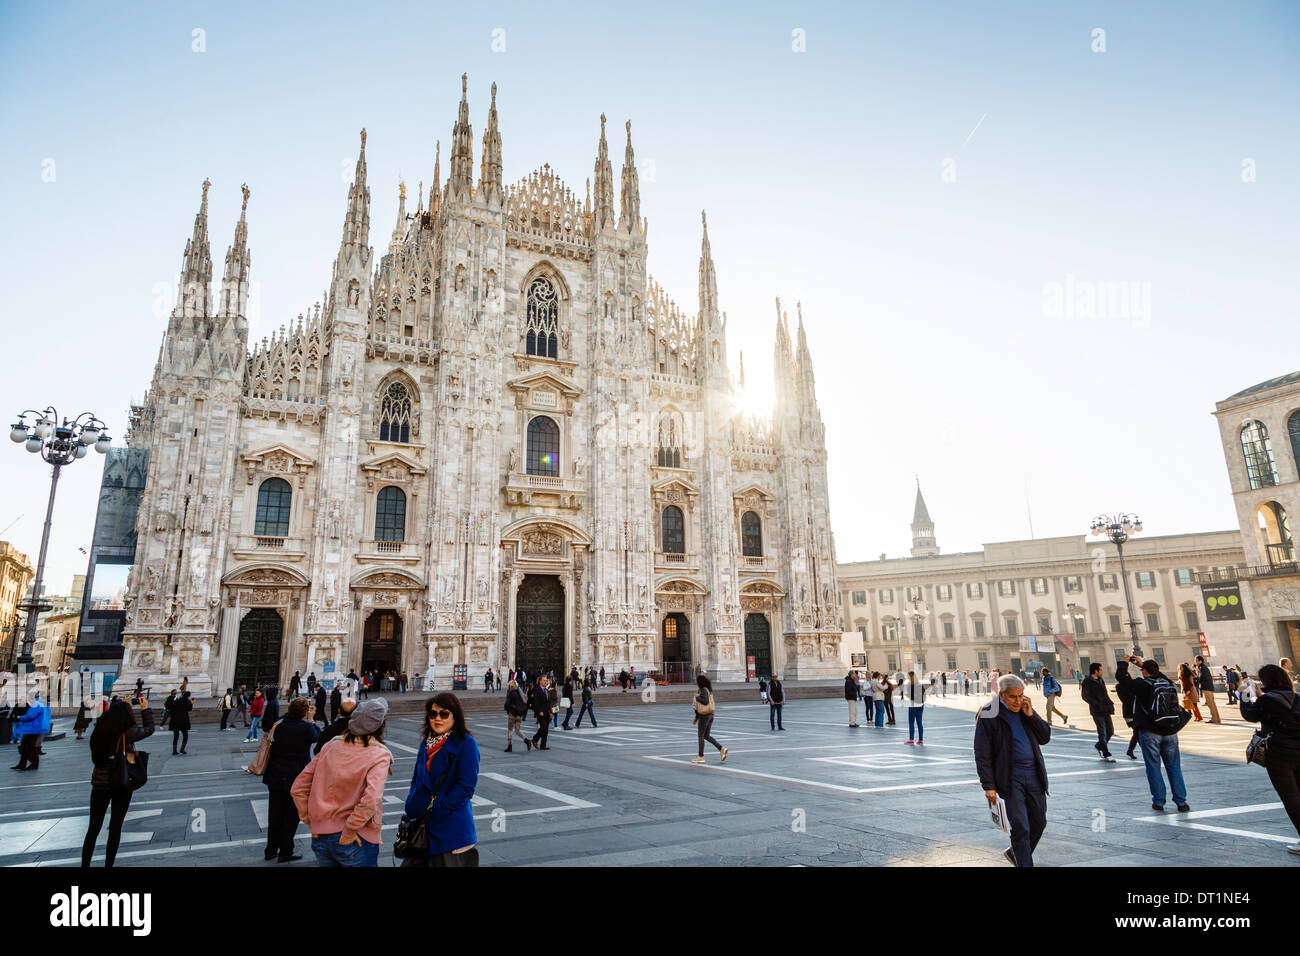 Duomo (Cathedral), Milan, Lombardy, Italy, Europe Stock Photo